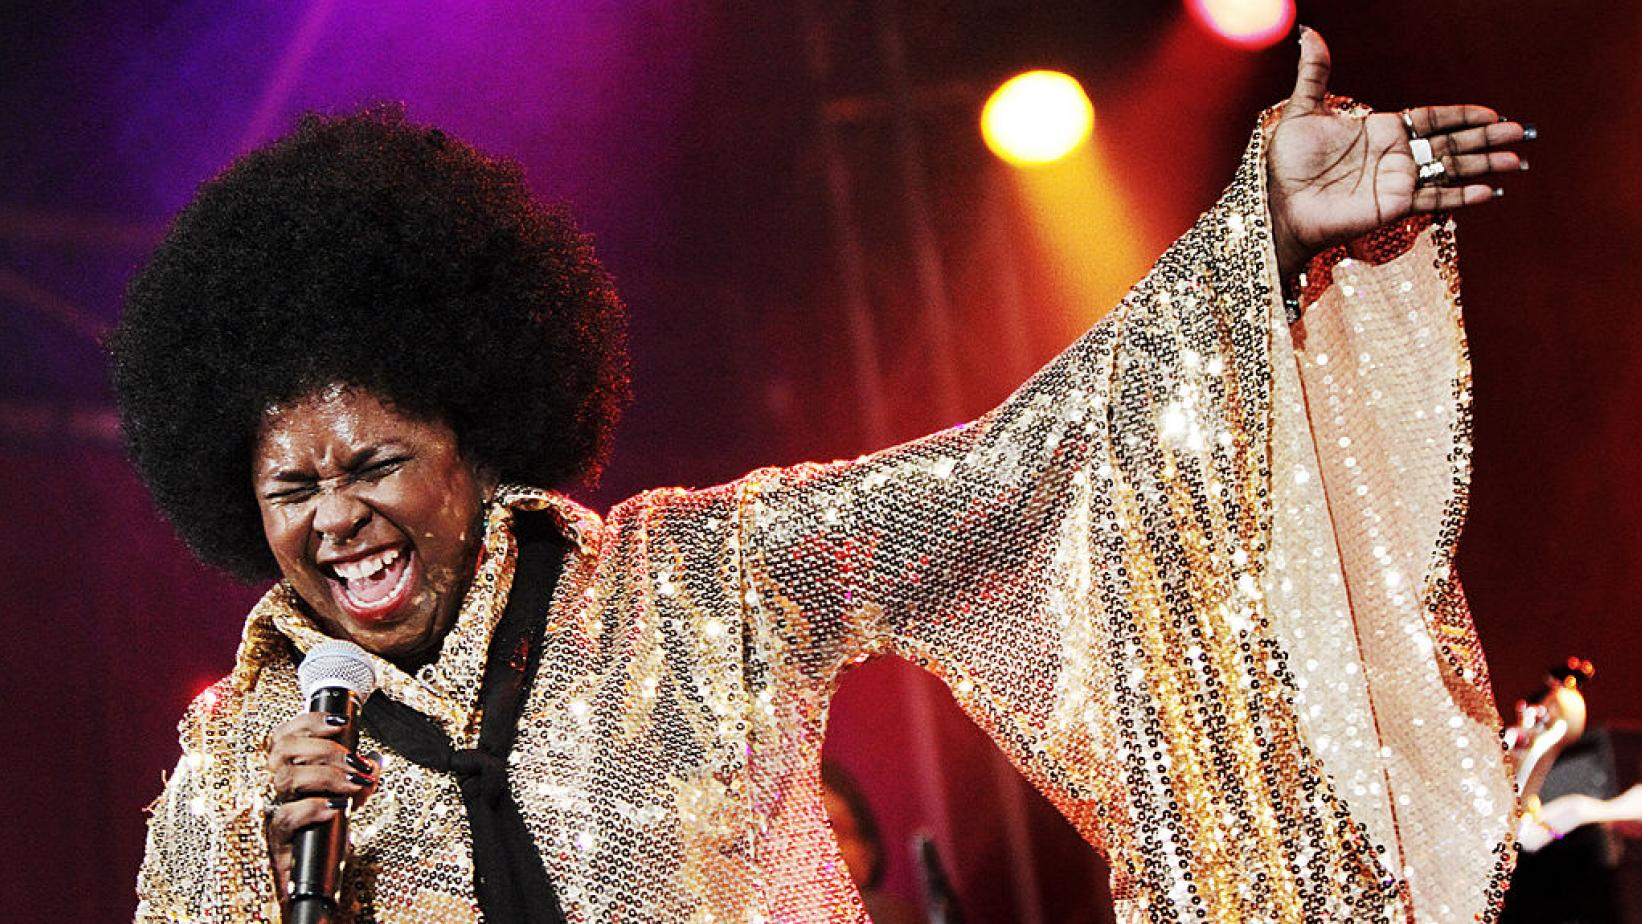 Betty Wright performs at the 2012 North Sea Jazz Festival